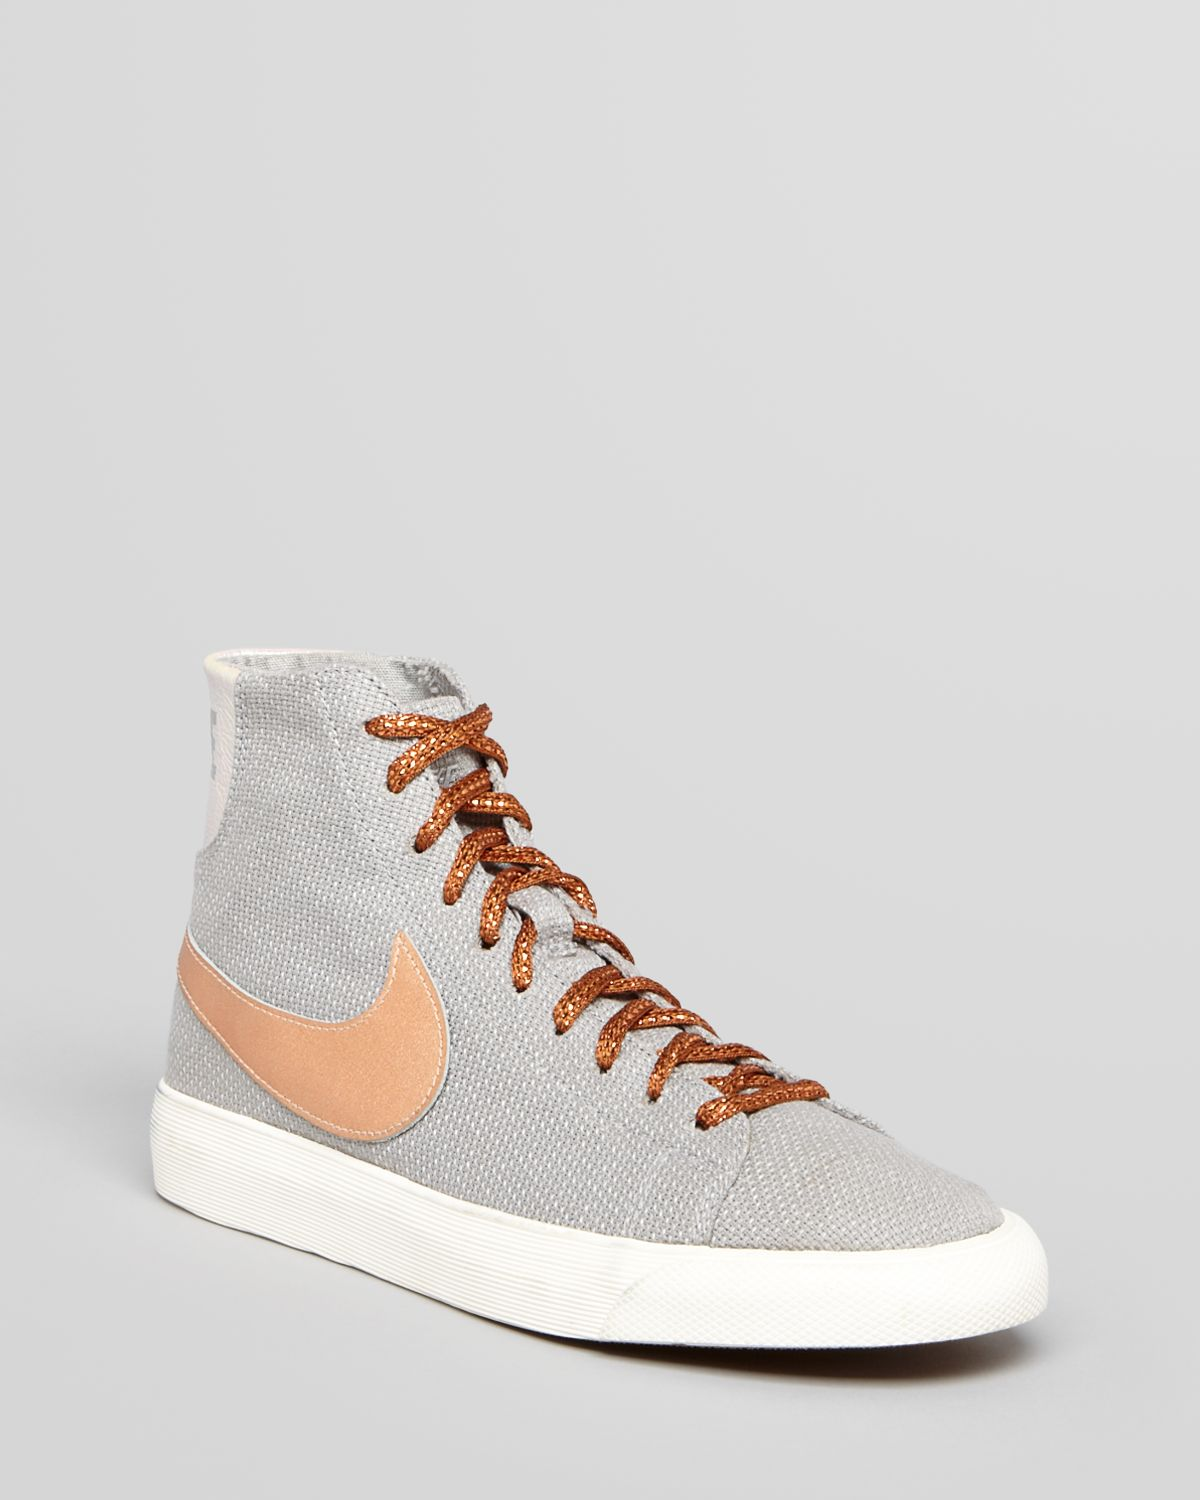 Nike Lace Up High Top Sneakers Womens